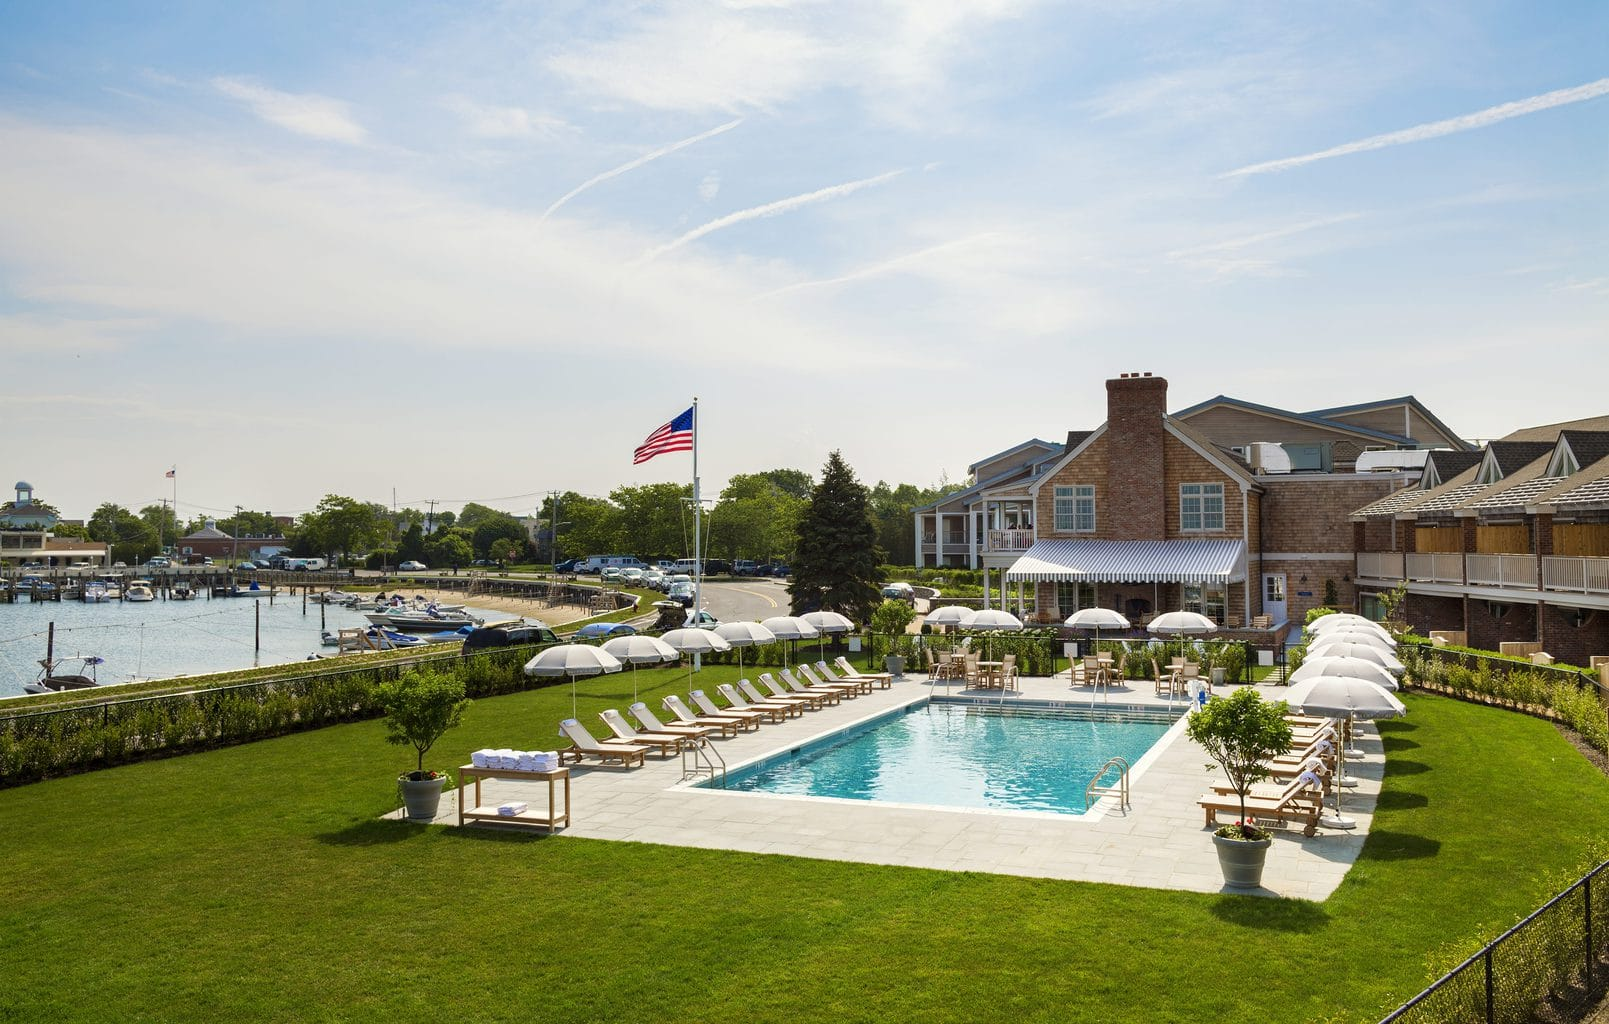 Final Images of Baron's Cove Hotel in Sag Harbor, New York.